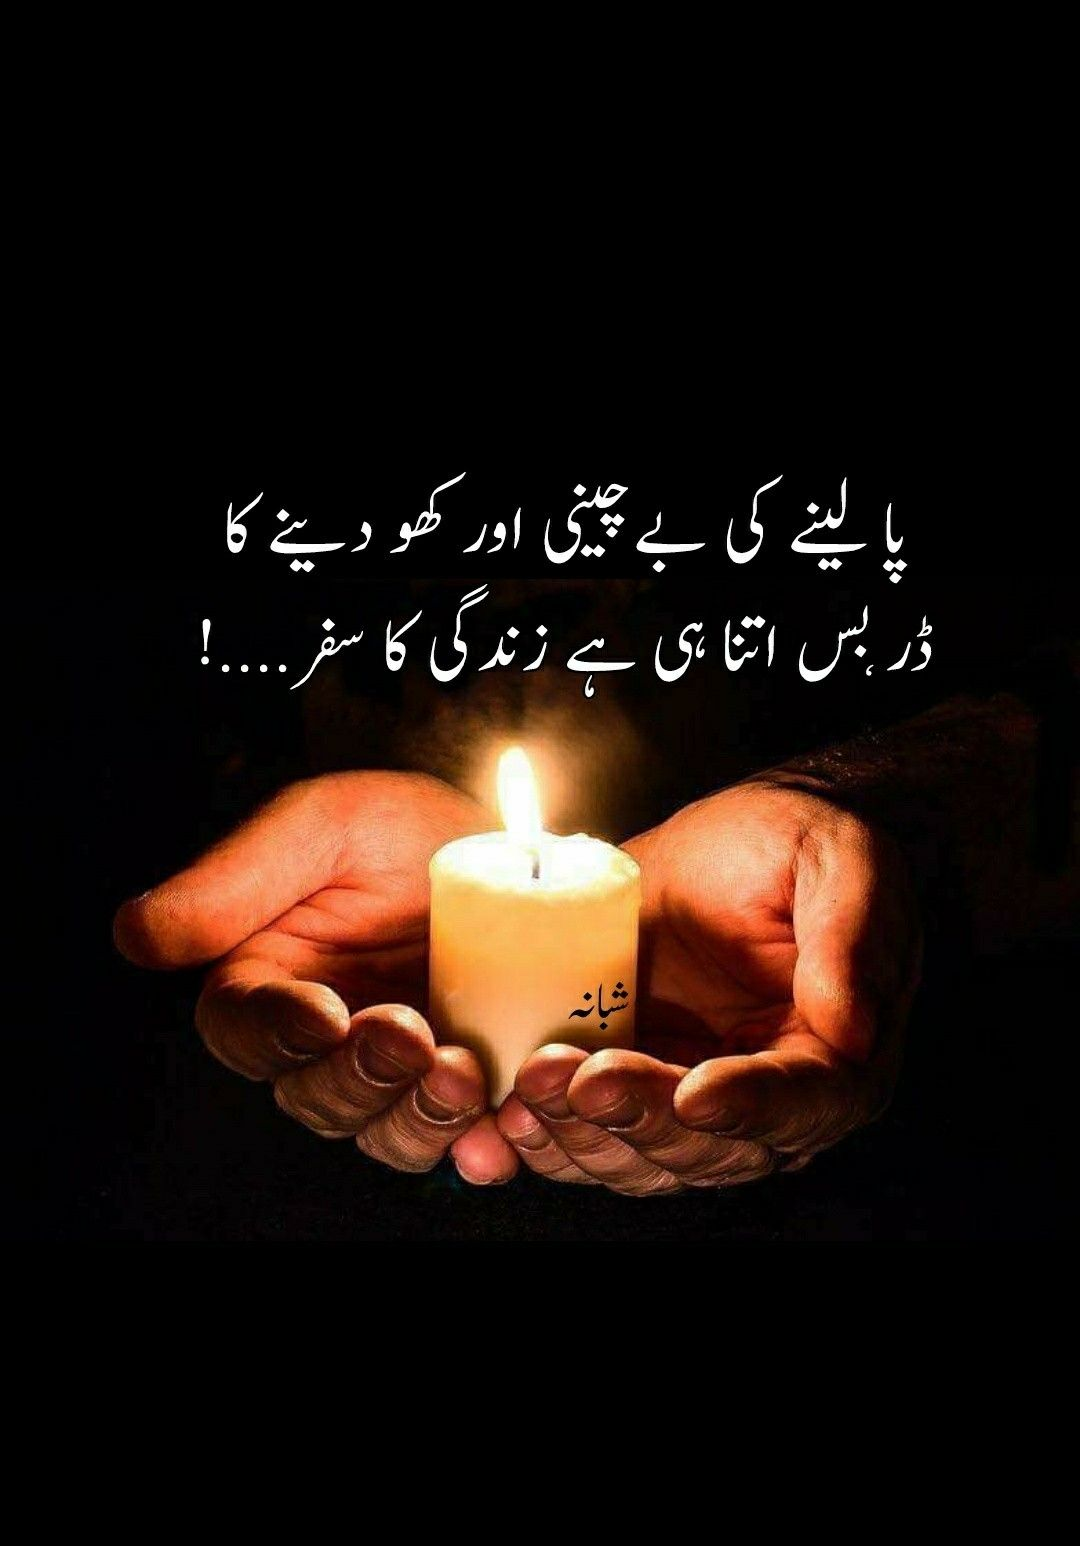 Pin By Asmat Tahira On About Life Urdu Funny Quotes Quotations Relationship Quotes